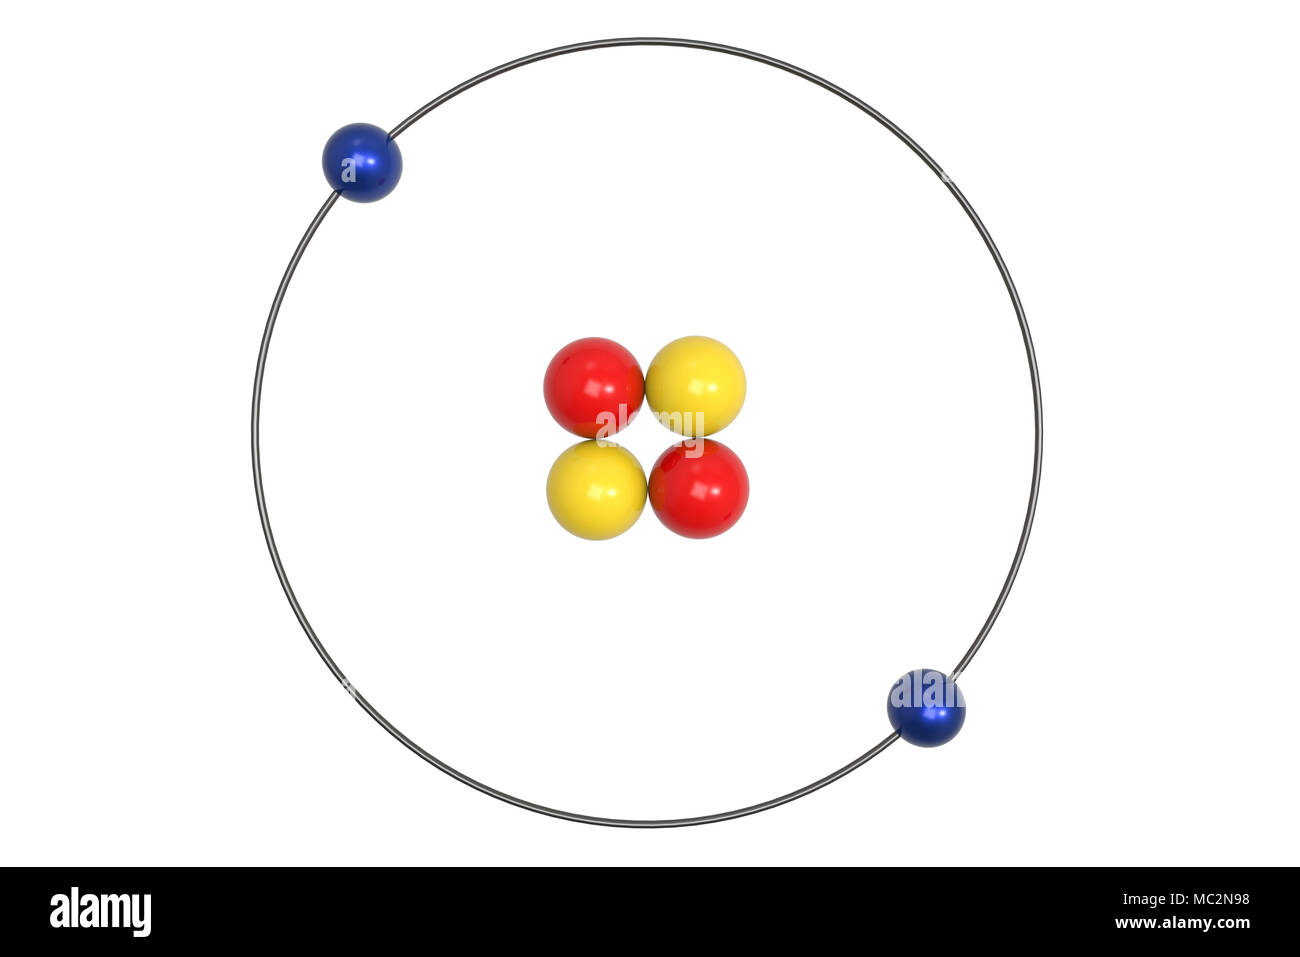 Ex Helium Atom Diagram Explore Schematic Wiring Oxygen Cut Out Stock Images Pictures Alamy Rh Com Labeled Fluorine